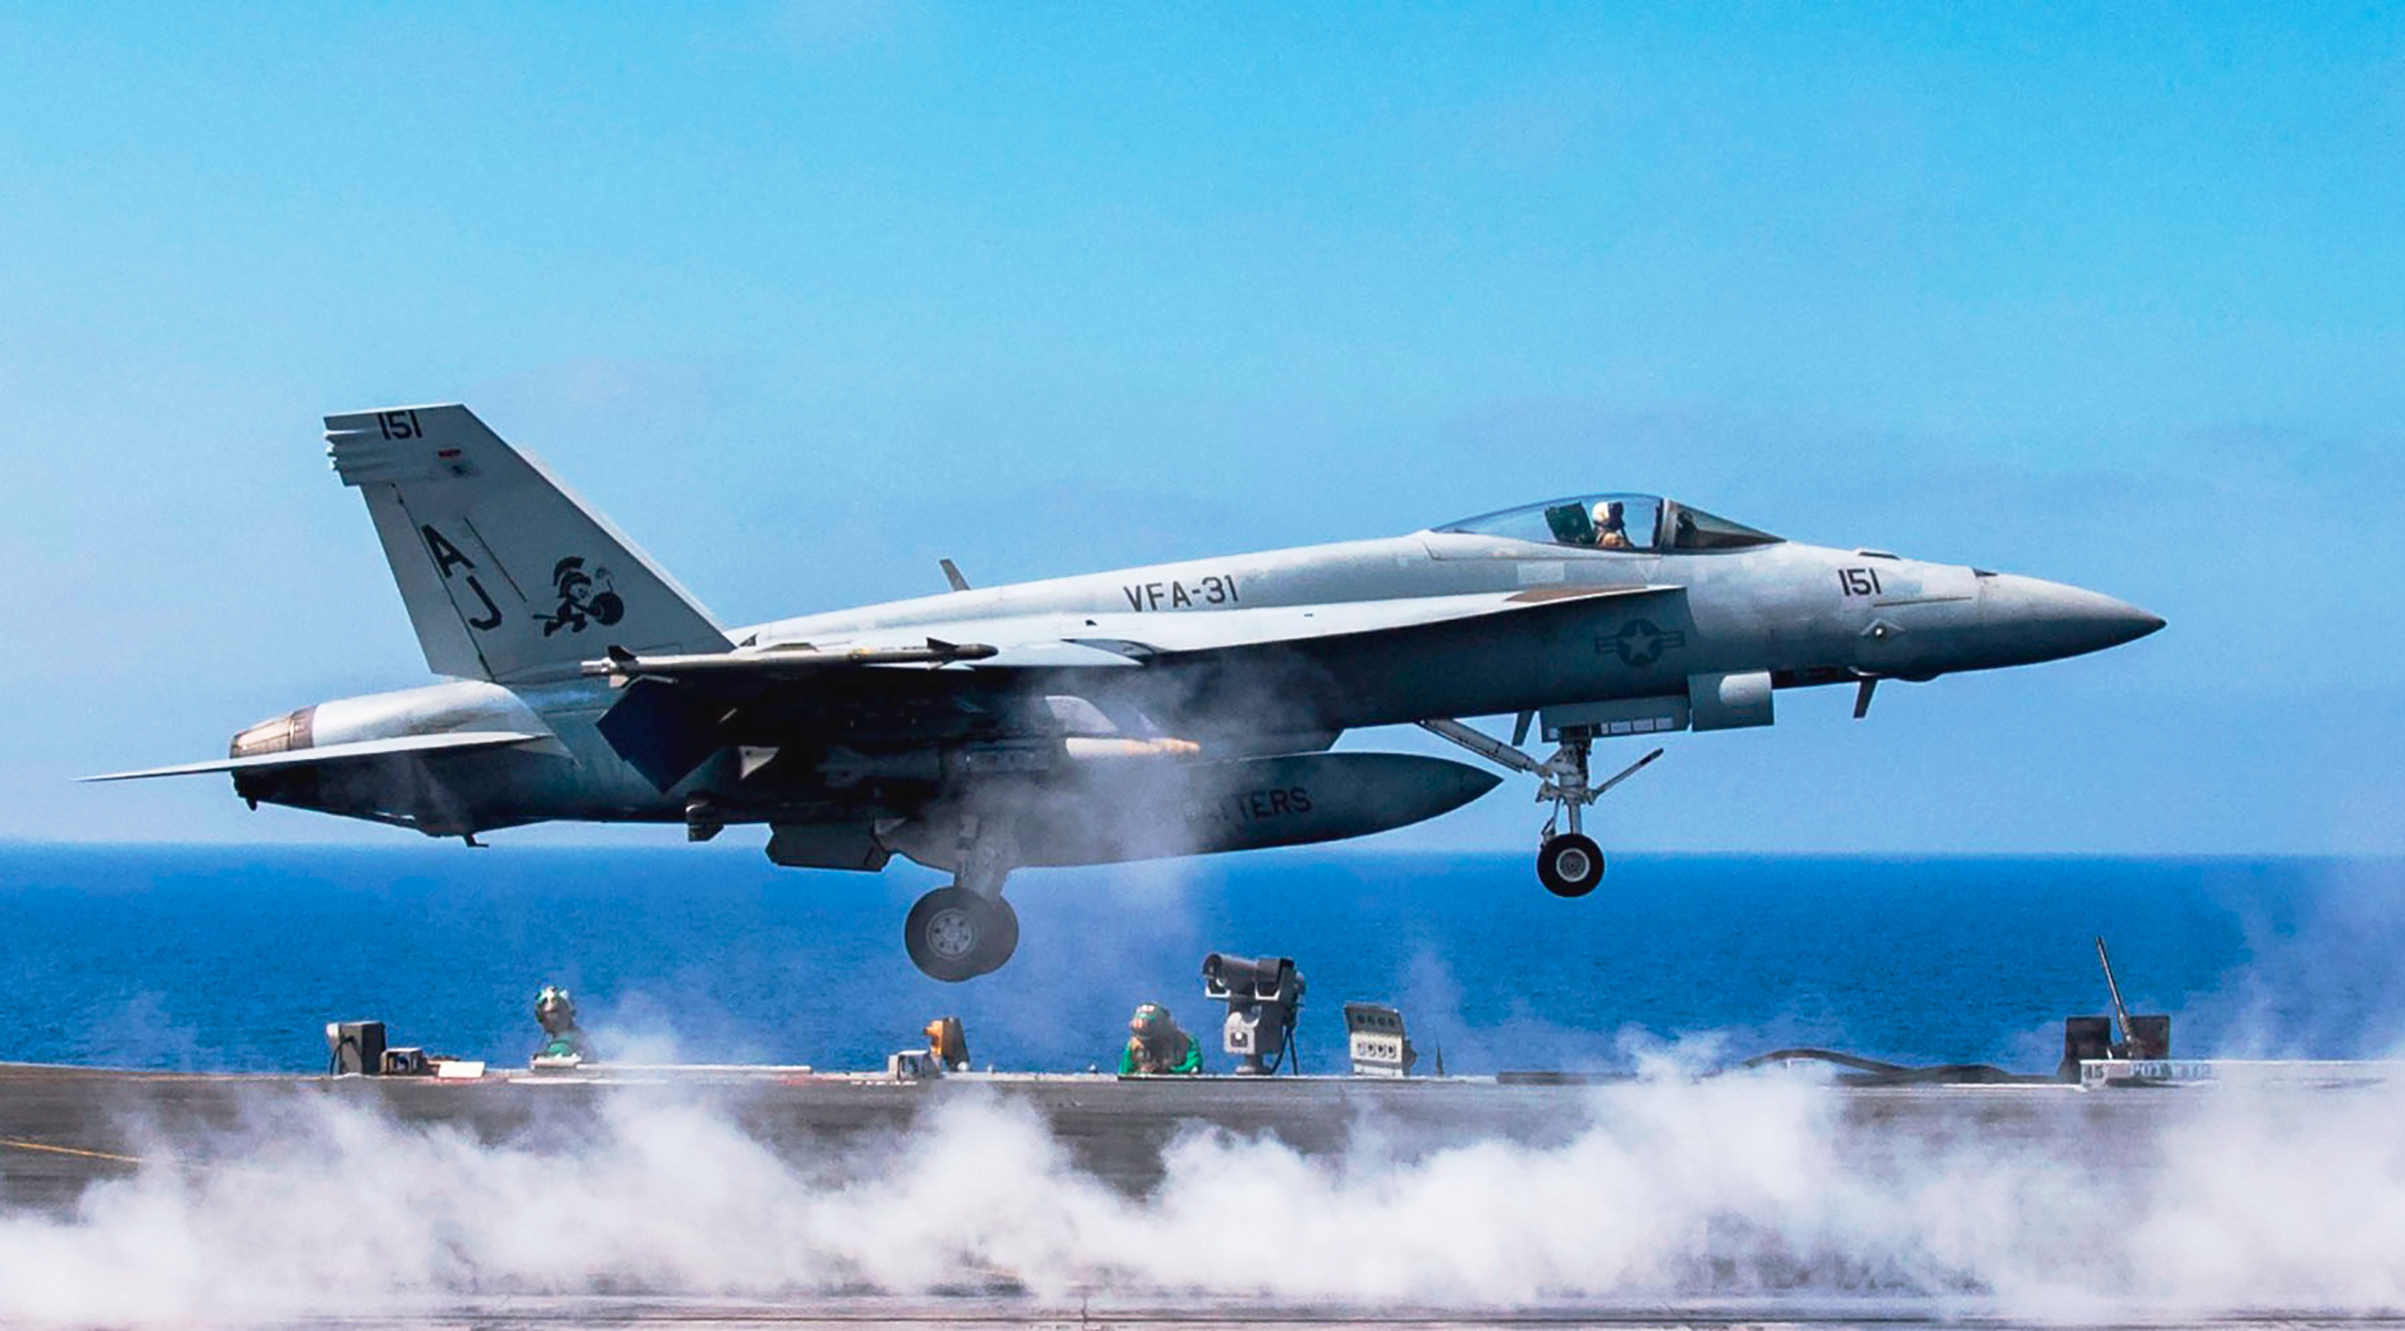 An F/A-18 Super Hornet launches from the U.S.S. George H.W. Bush, operating off the coast of Syria on June 6